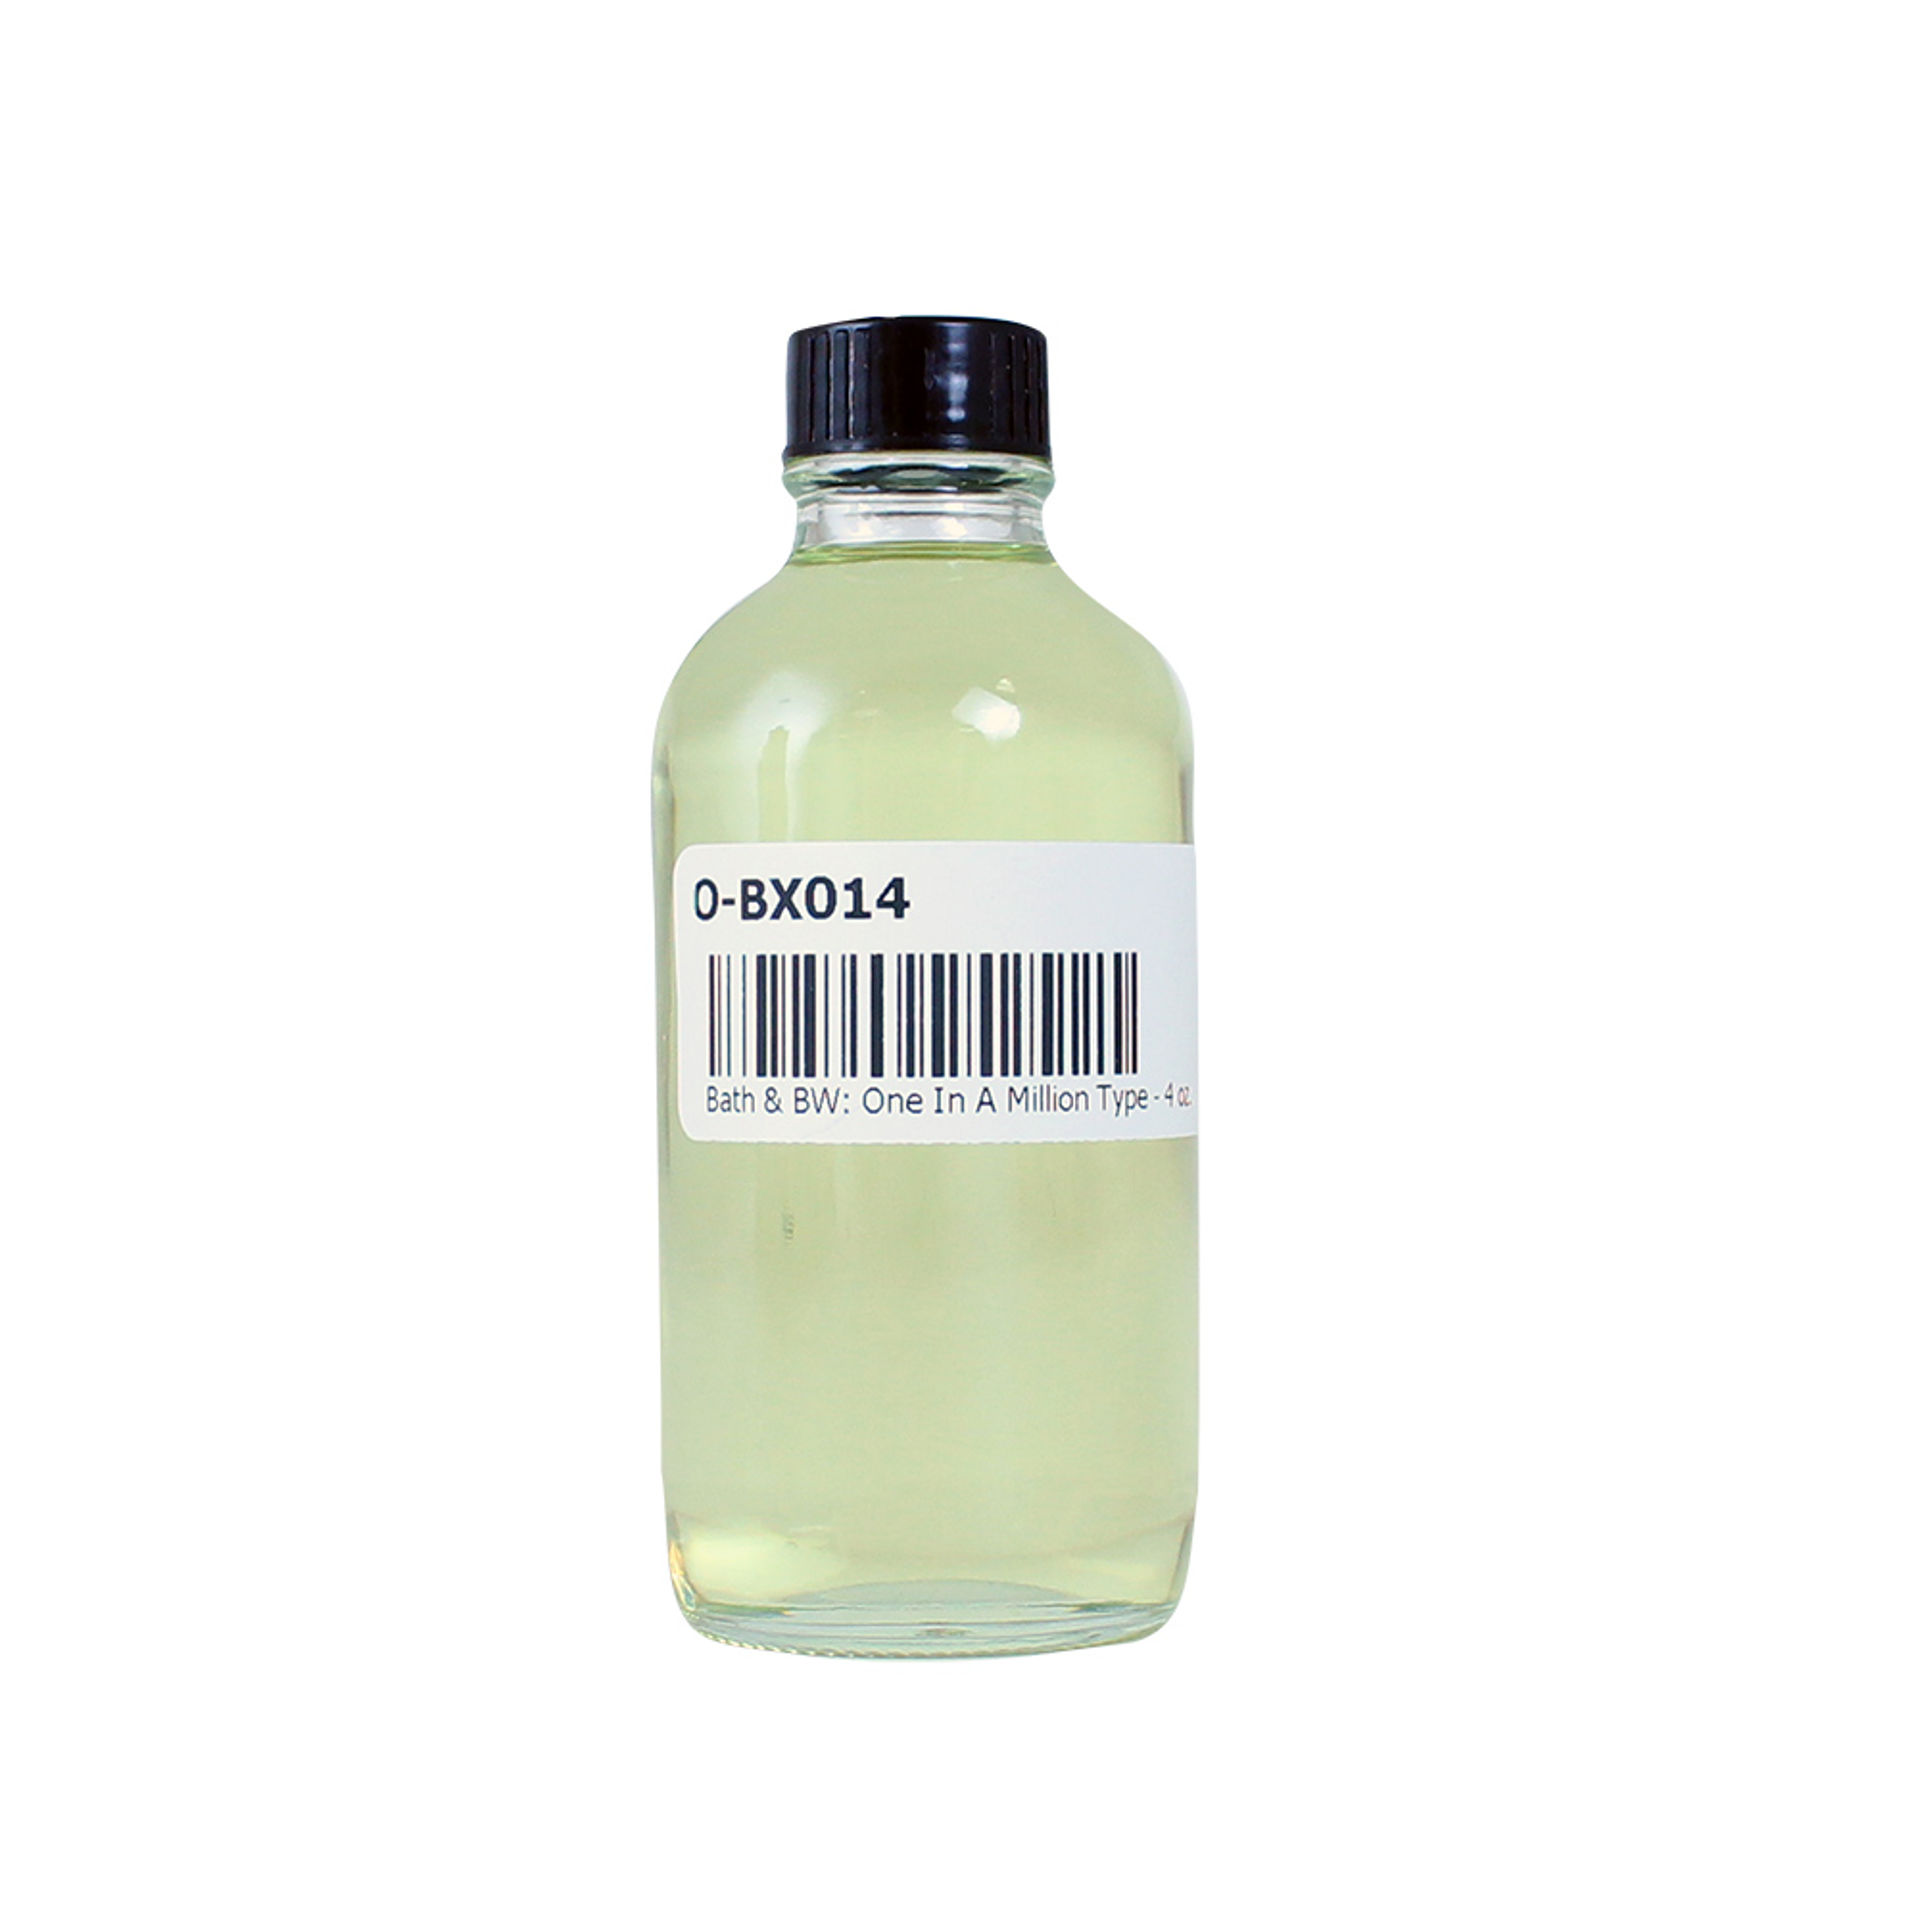 Picture of Bath & BW: One In A Million Type - 4 oz.